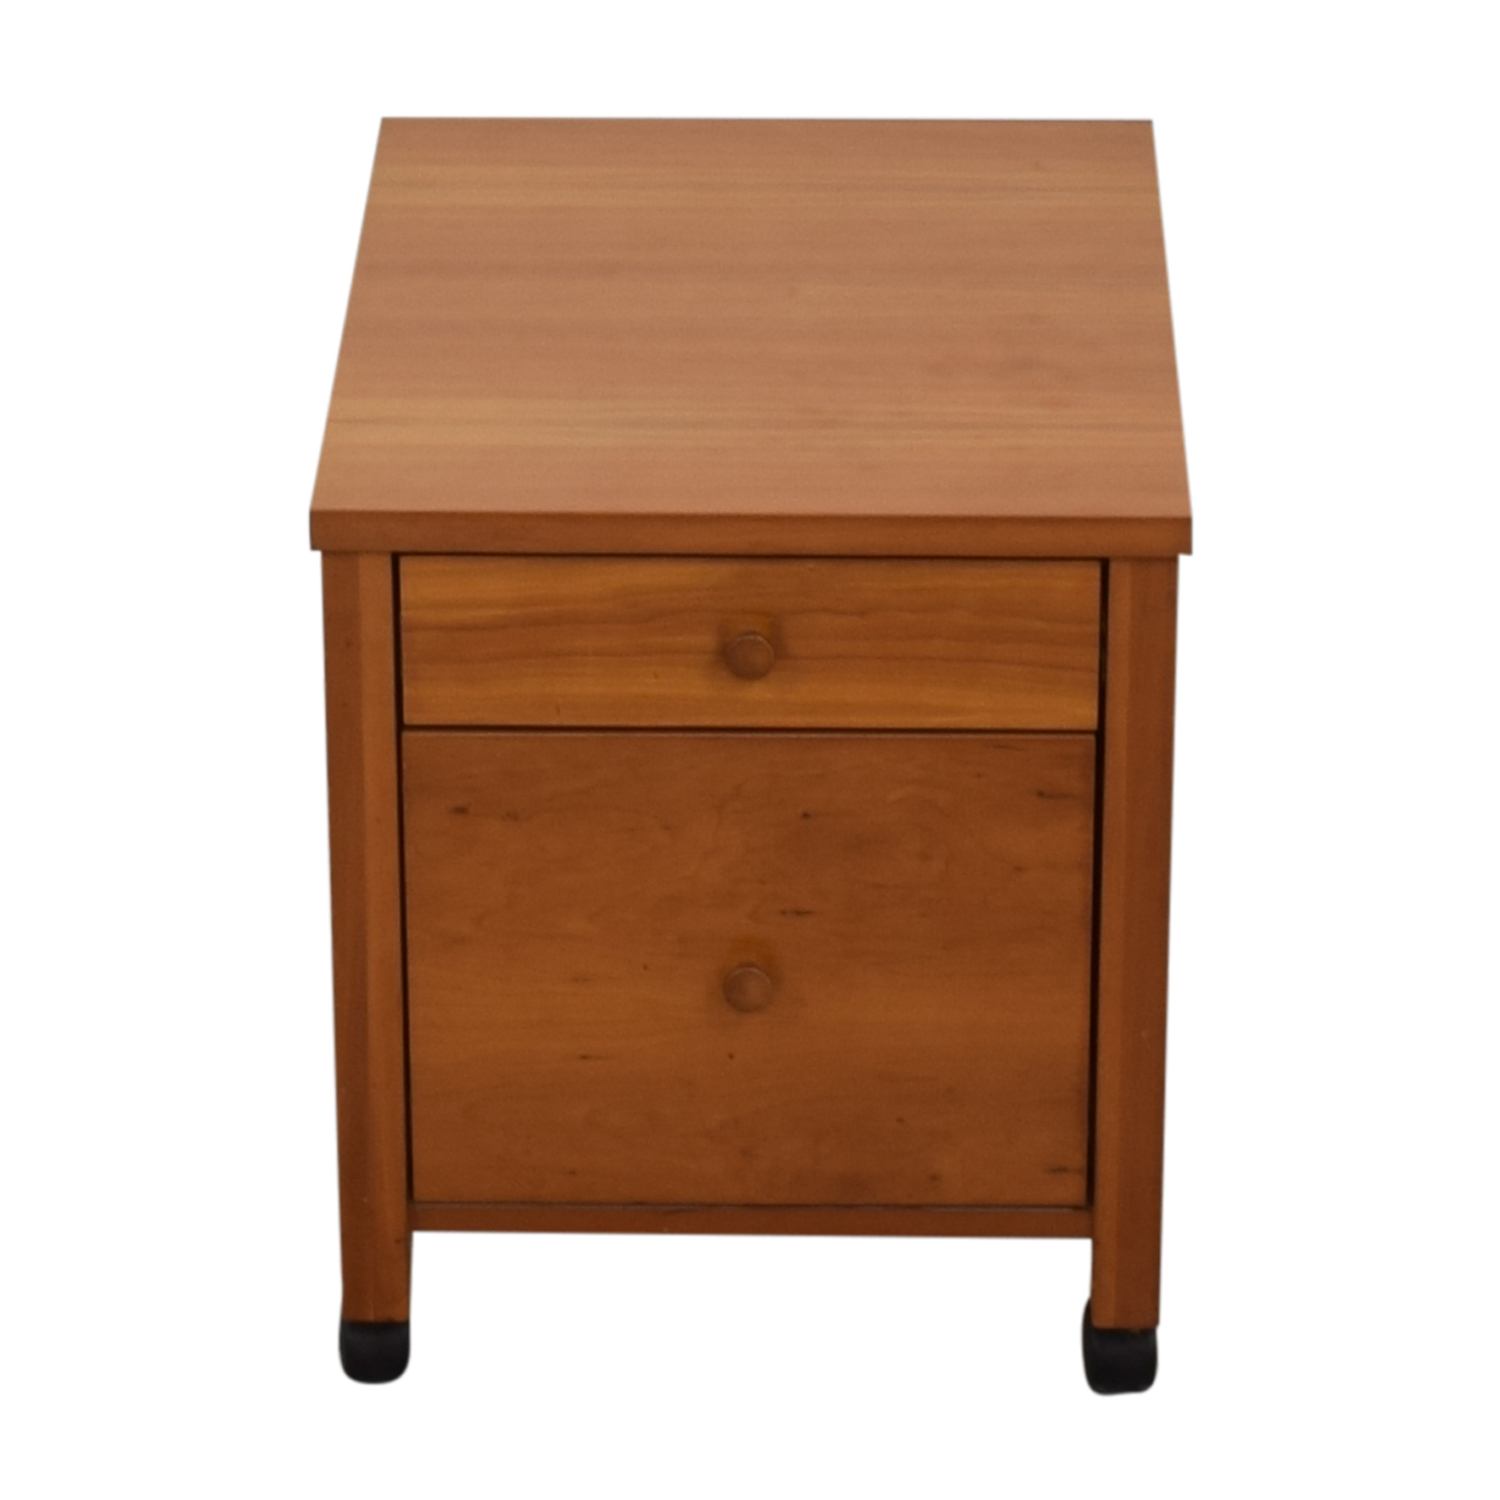 Two-Drawer Wood File Cabinet on Castors Storage